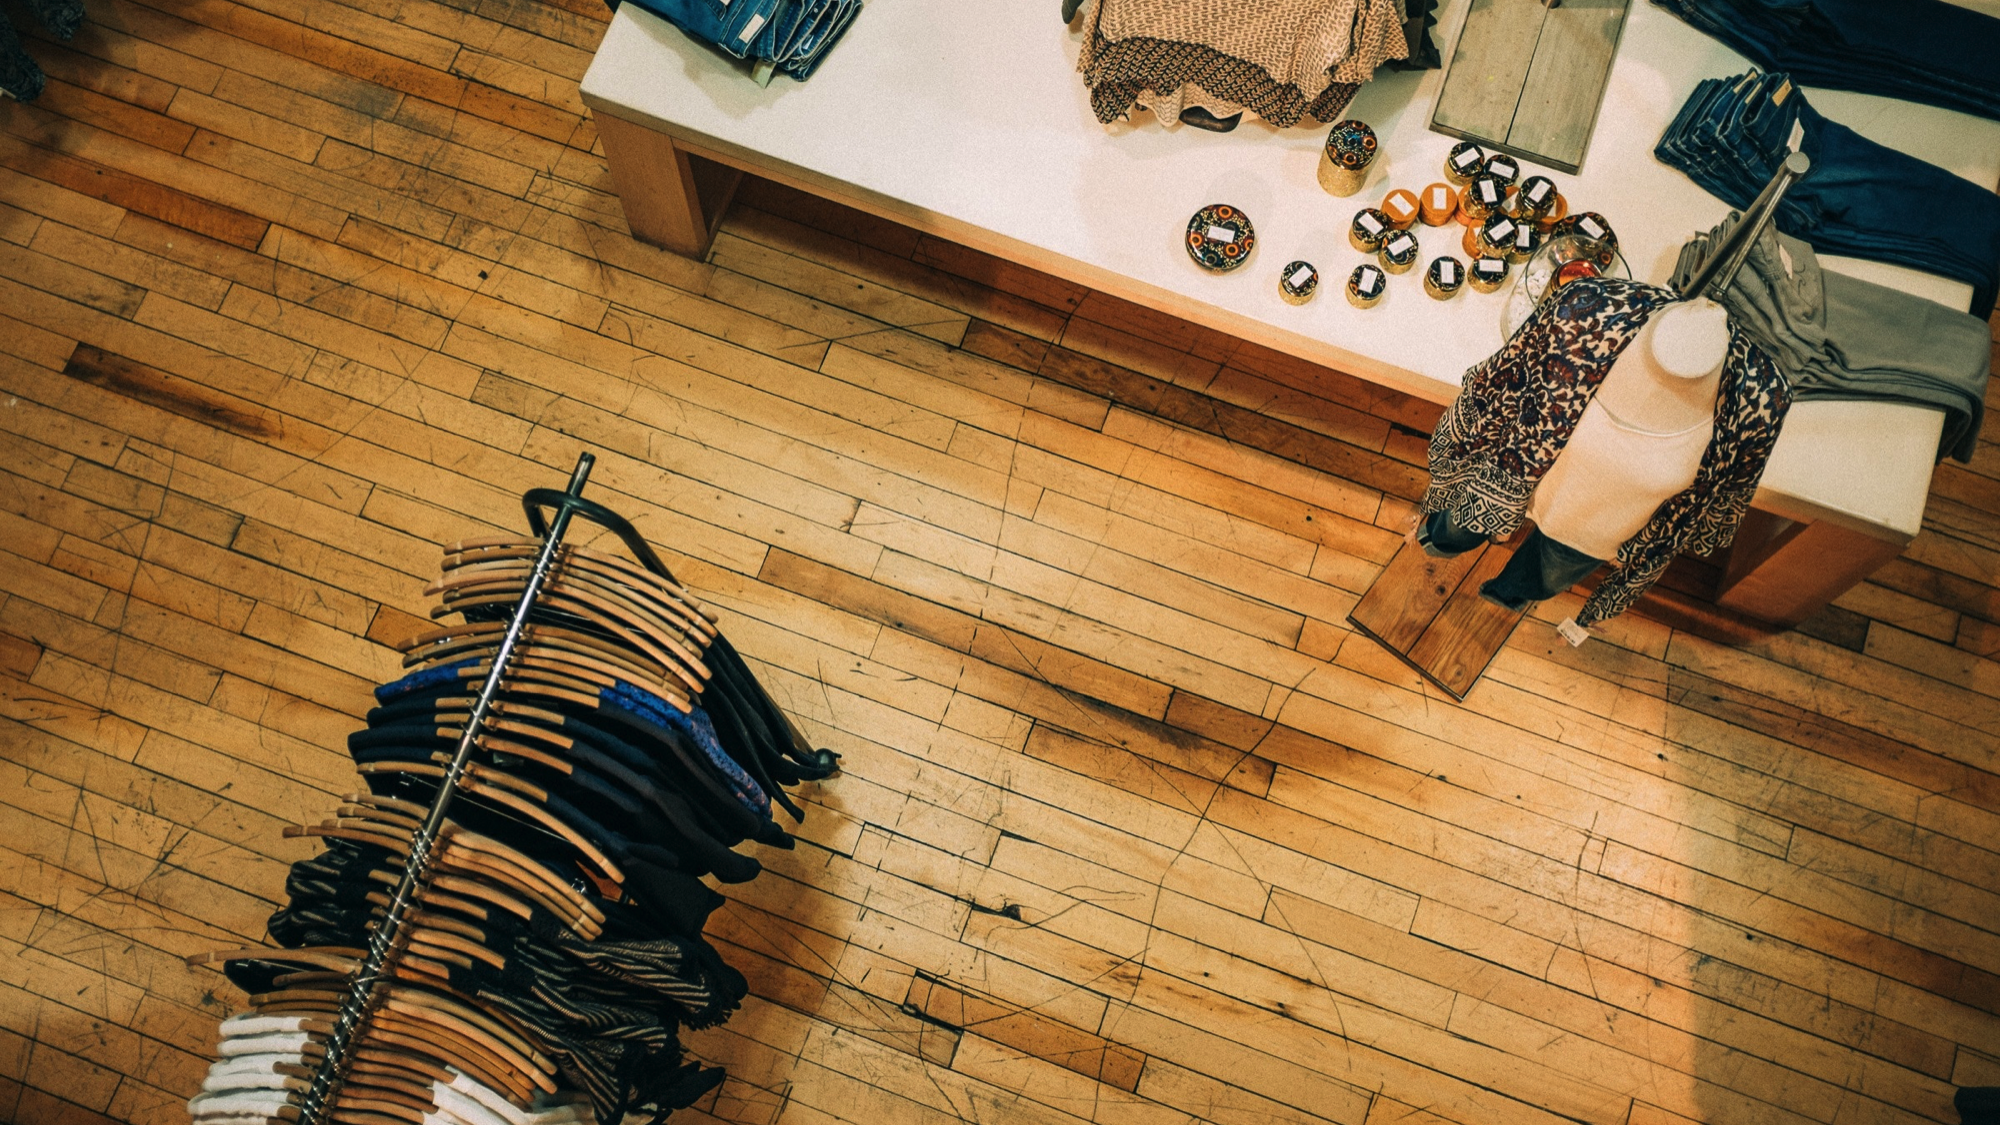 IS YOUR FRONTLINE PREPARED FOR THE CHANGING ROLE OF THE STORE?